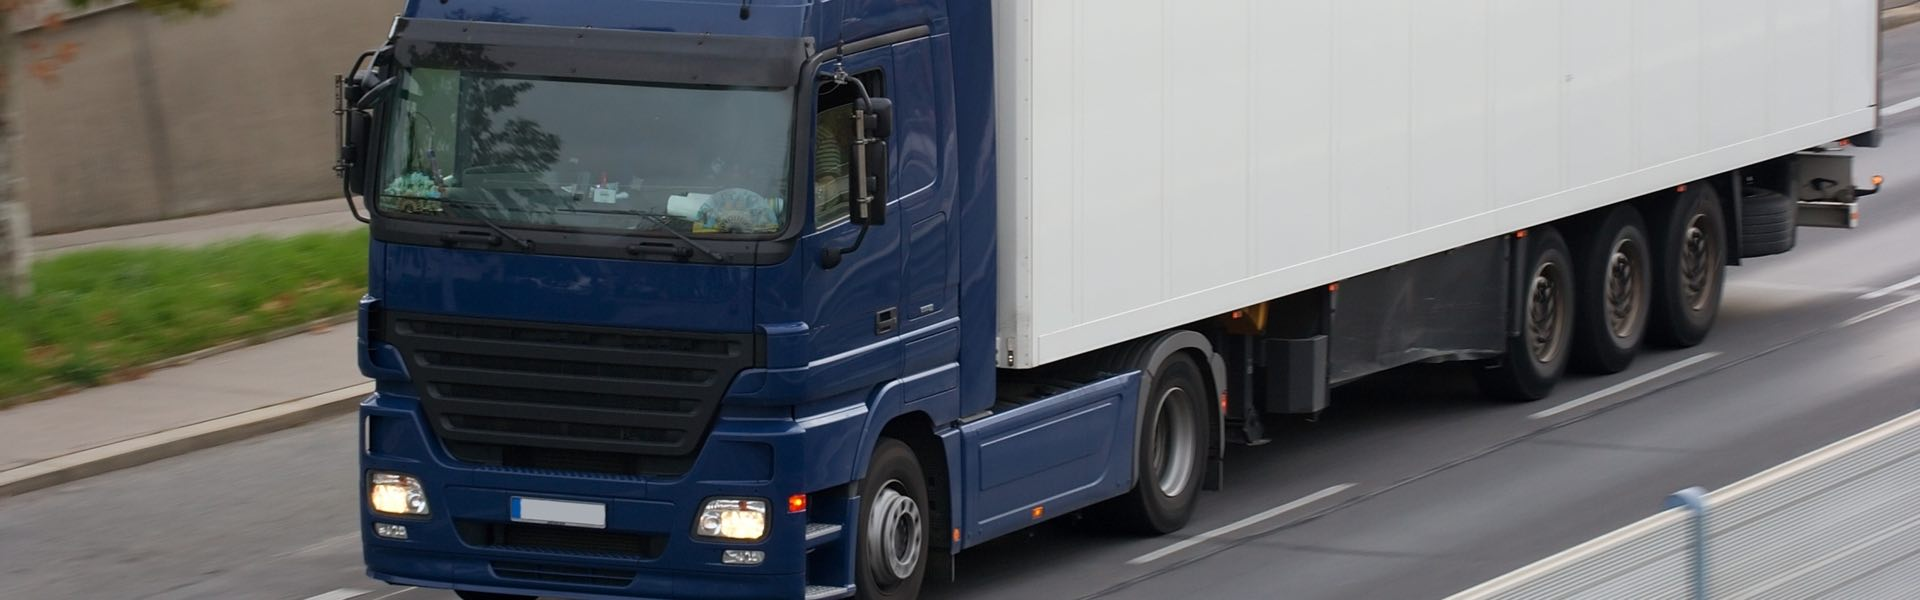 ASI MOVERS: PASSION FOR RELOCATION